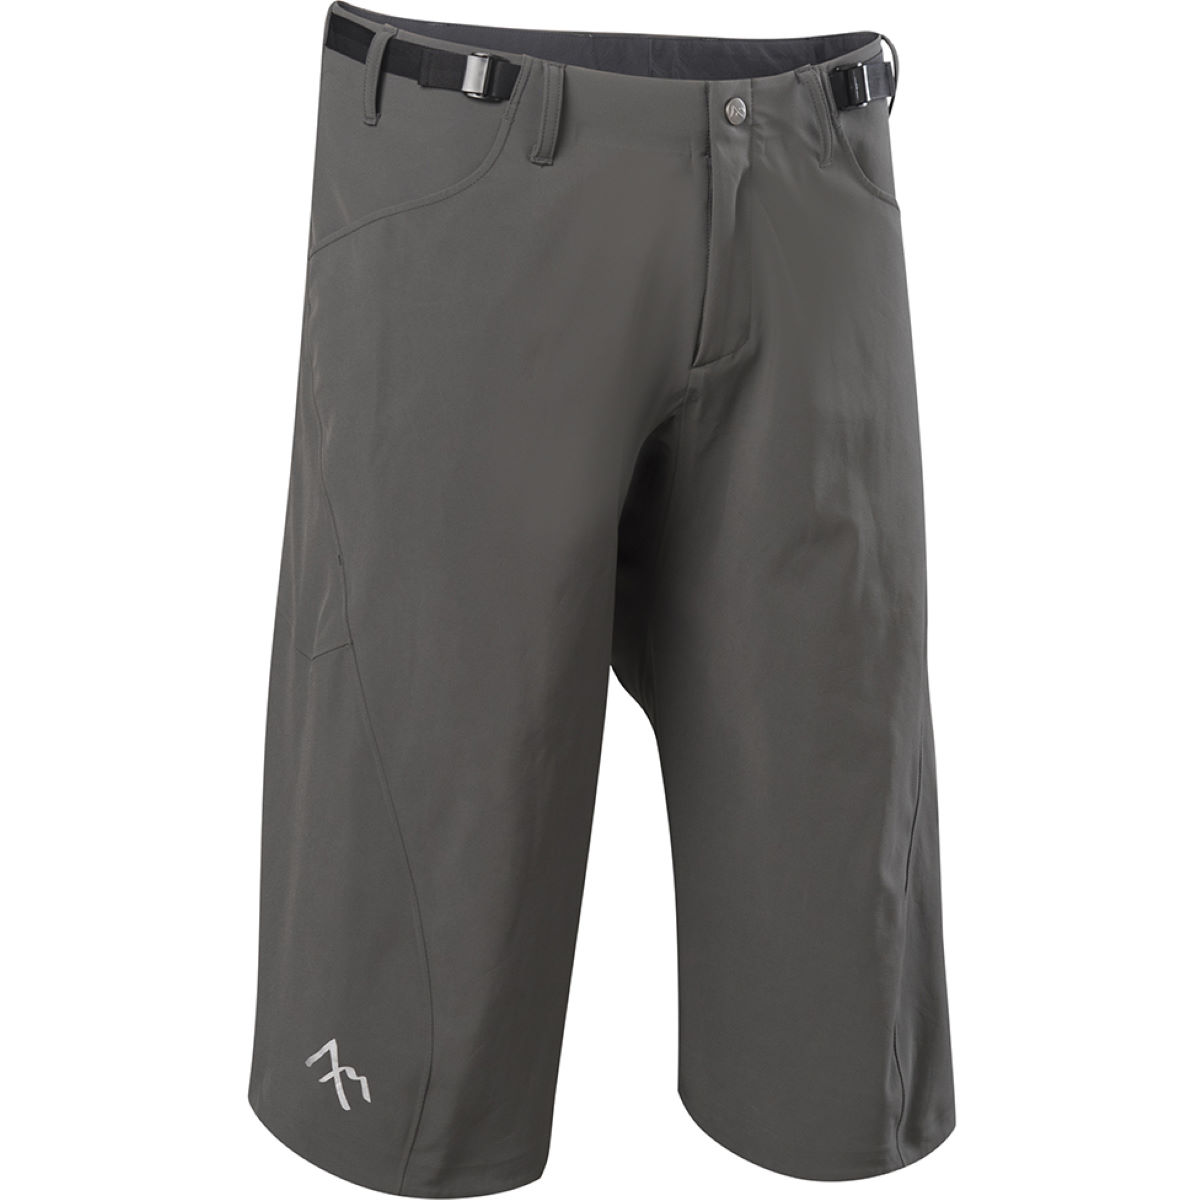 Short 7Mesh Recon - M Bad Ash Grey Shorts VTT